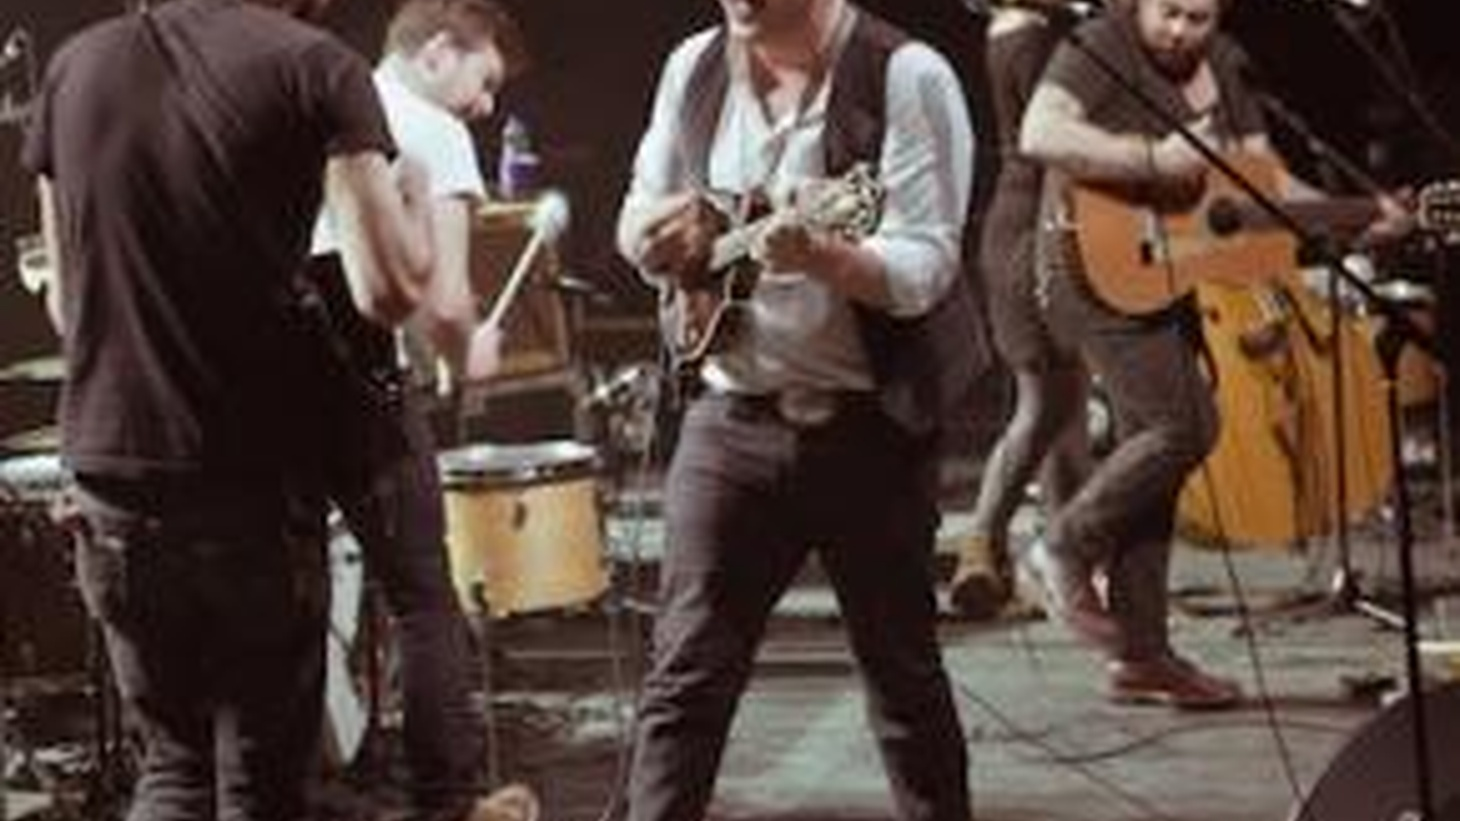 UK folk rockers Mumford & Sons have really struck a chord with audiences thanks to epic live shows and a hugely successful new album.